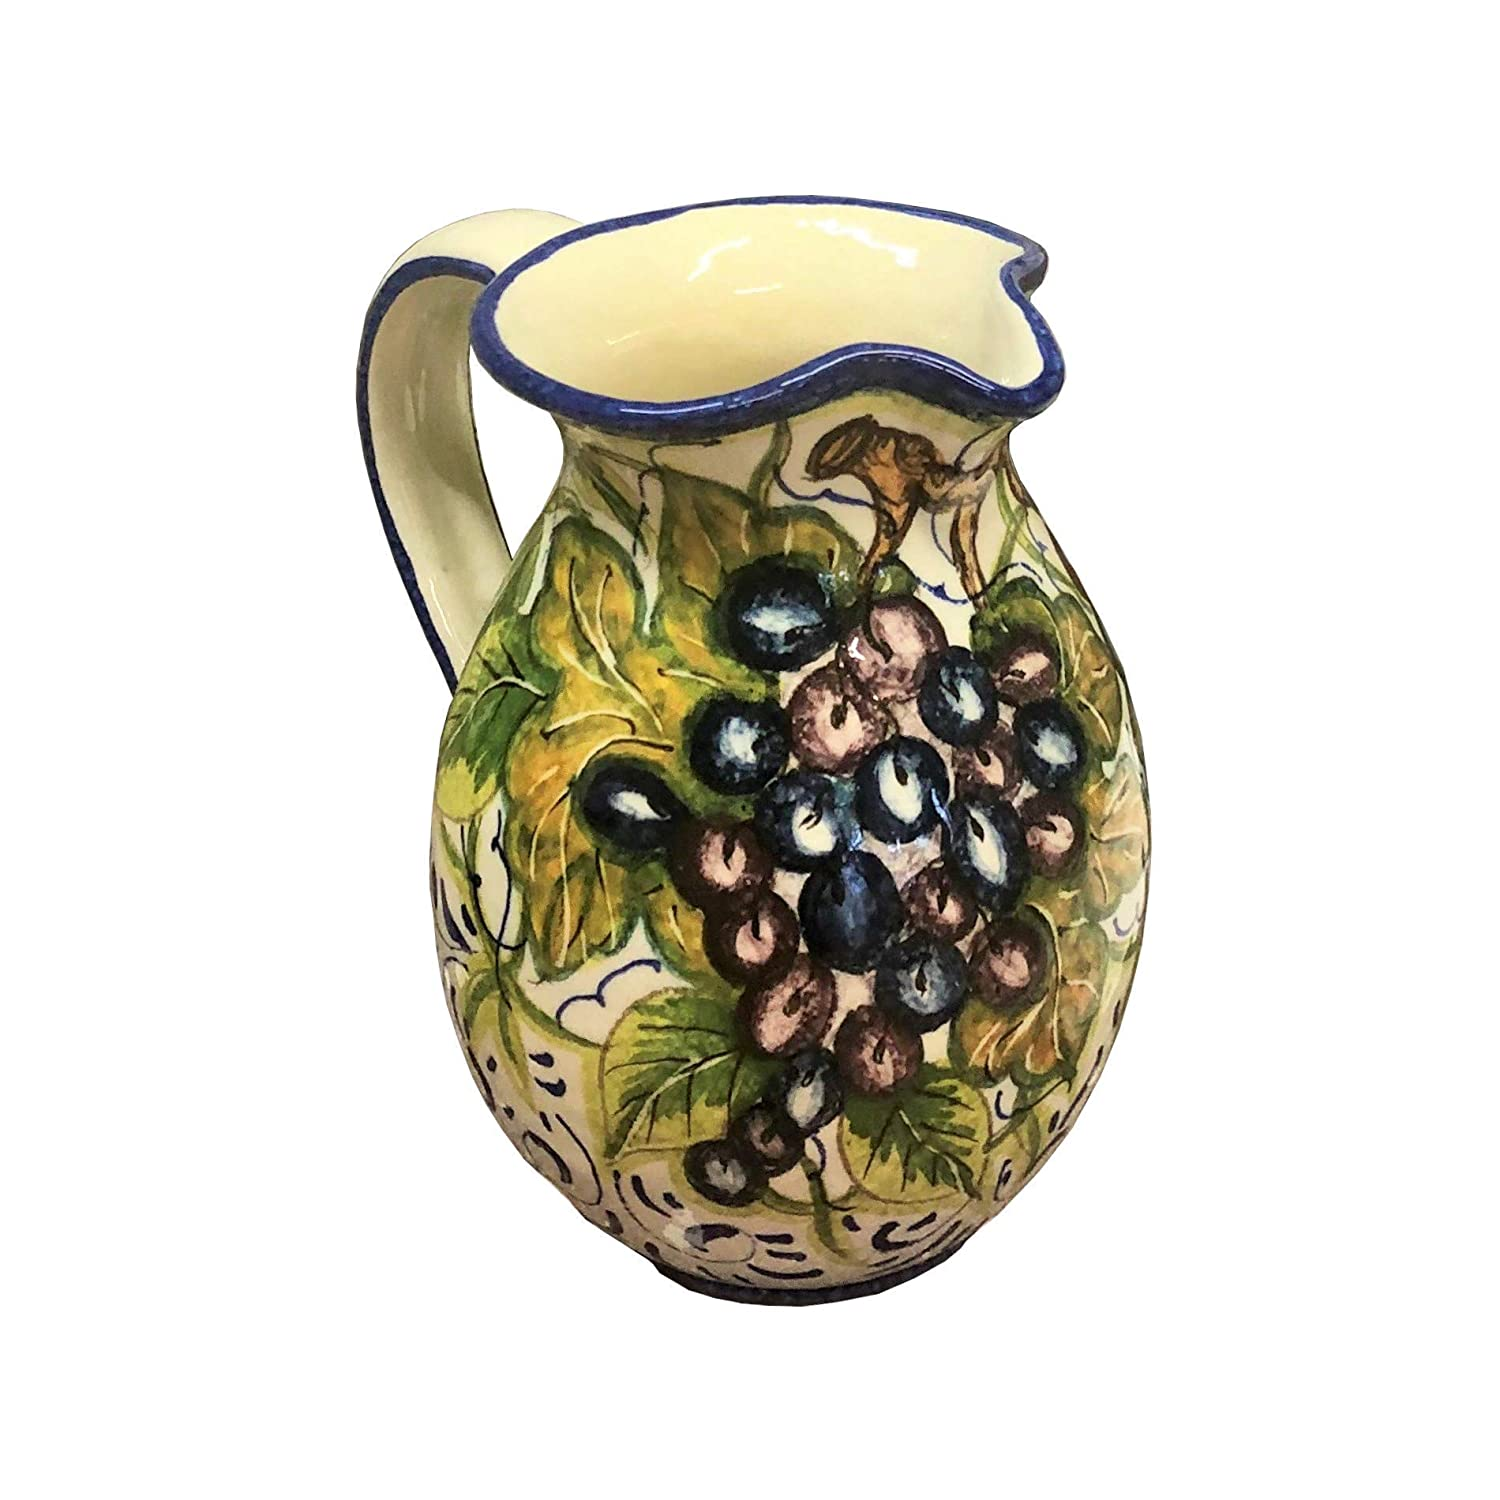 Italian Ceramic Art Pottery Jar Pitcher